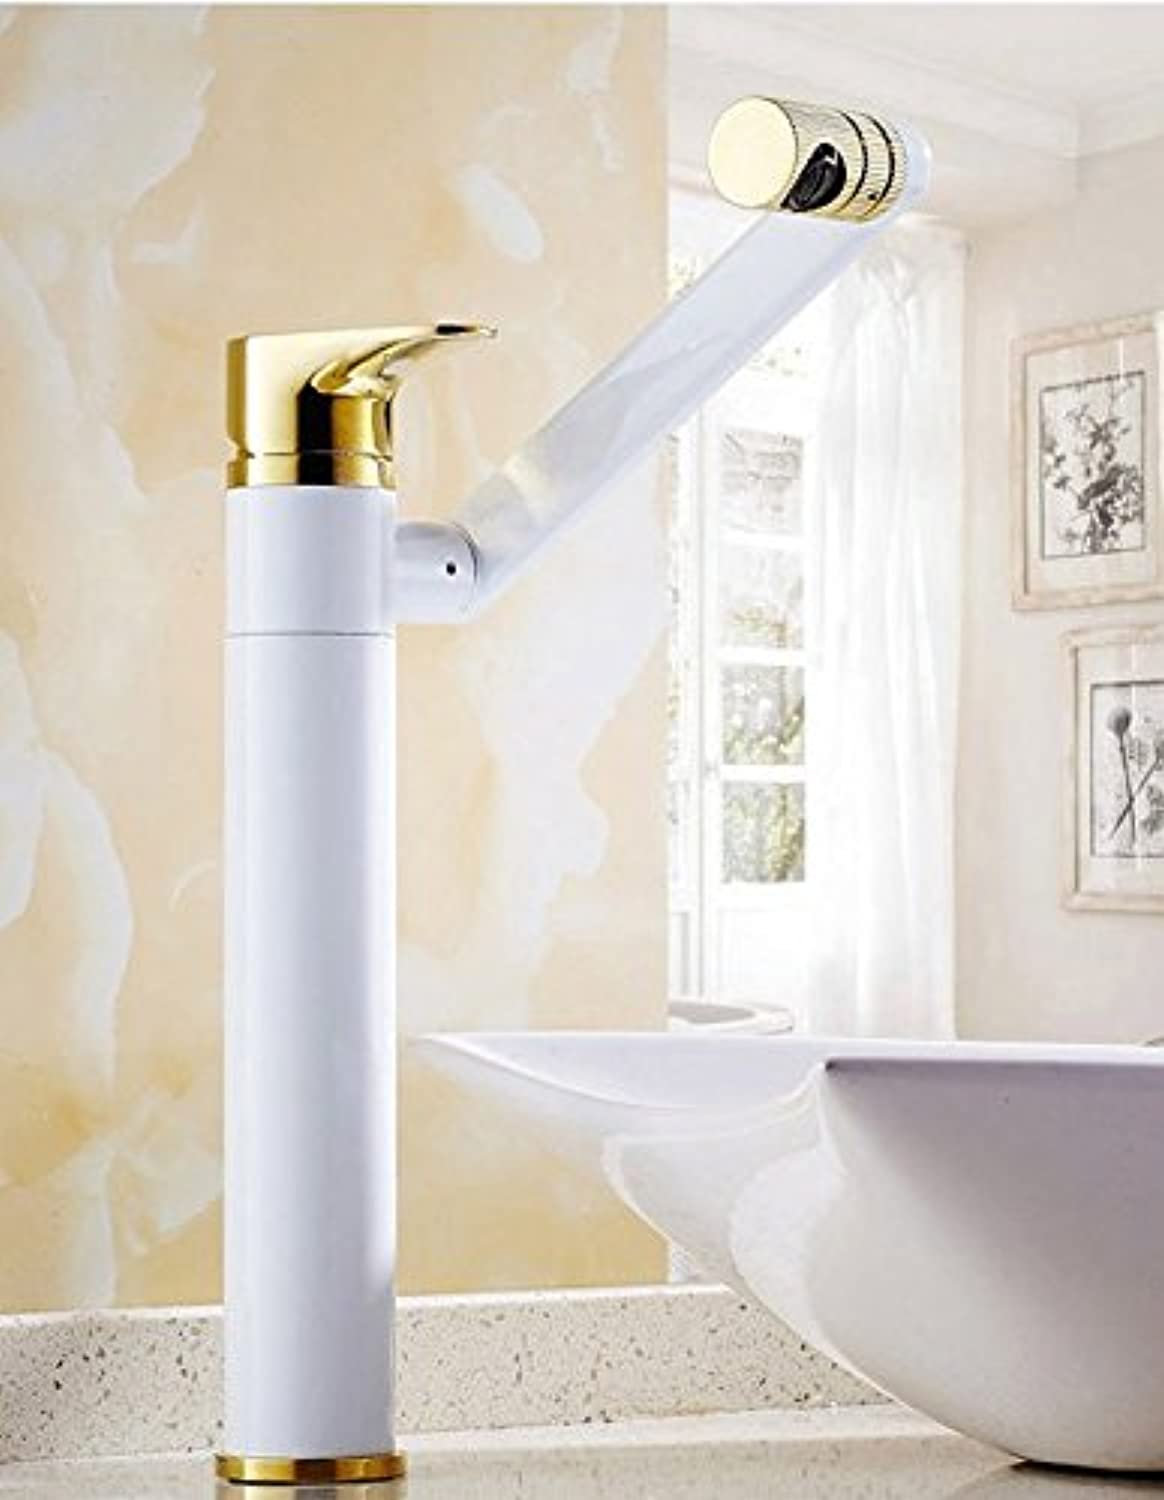 Hlluya Professional Sink Mixer Tap Kitchen Faucet Copper basin, hot and cold, and redate the 53697- 招 cat basin - White + gold plus high